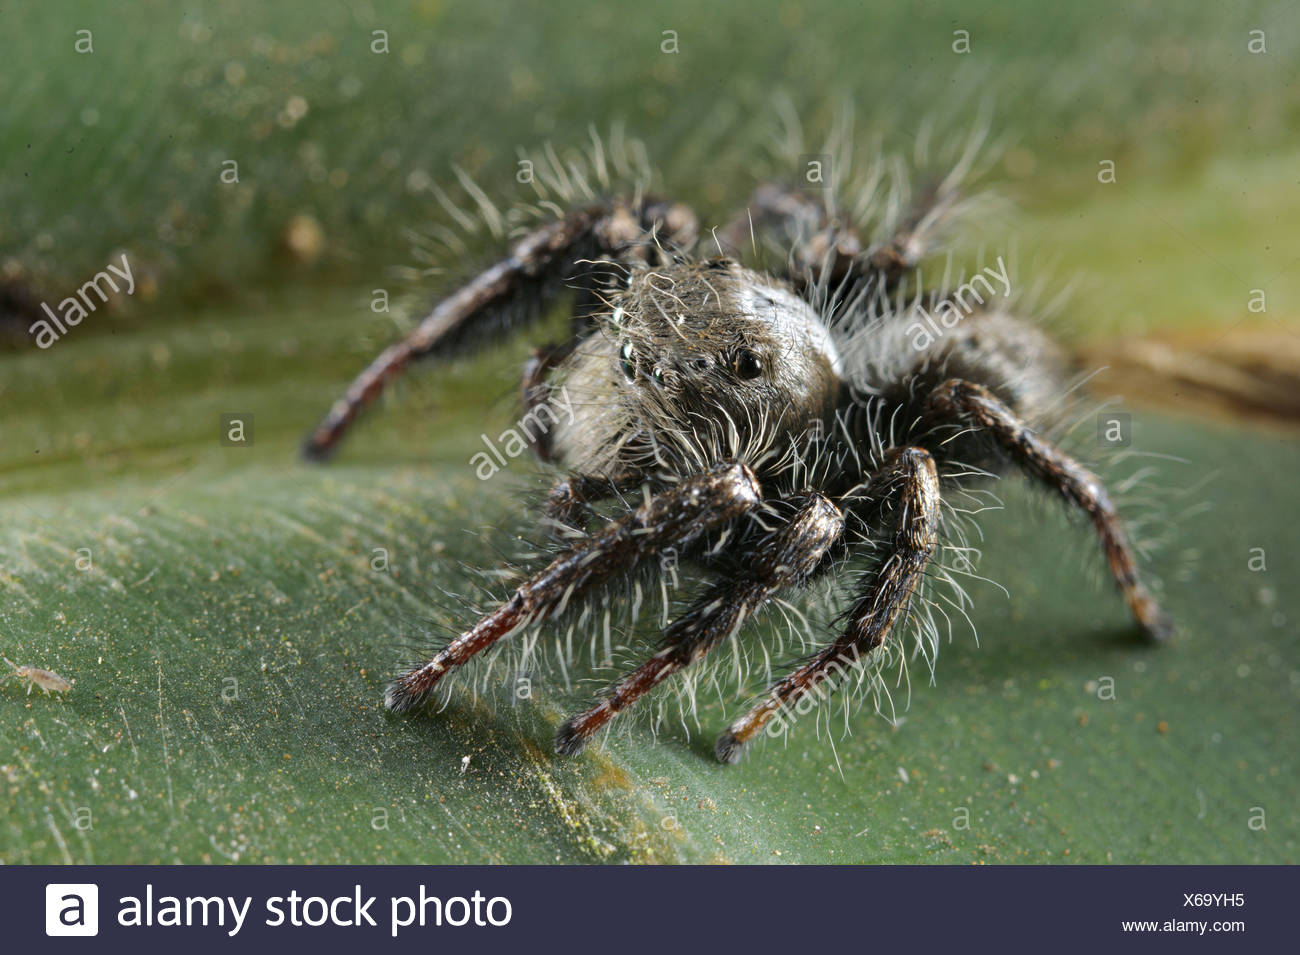 Giant African Spider South African S...